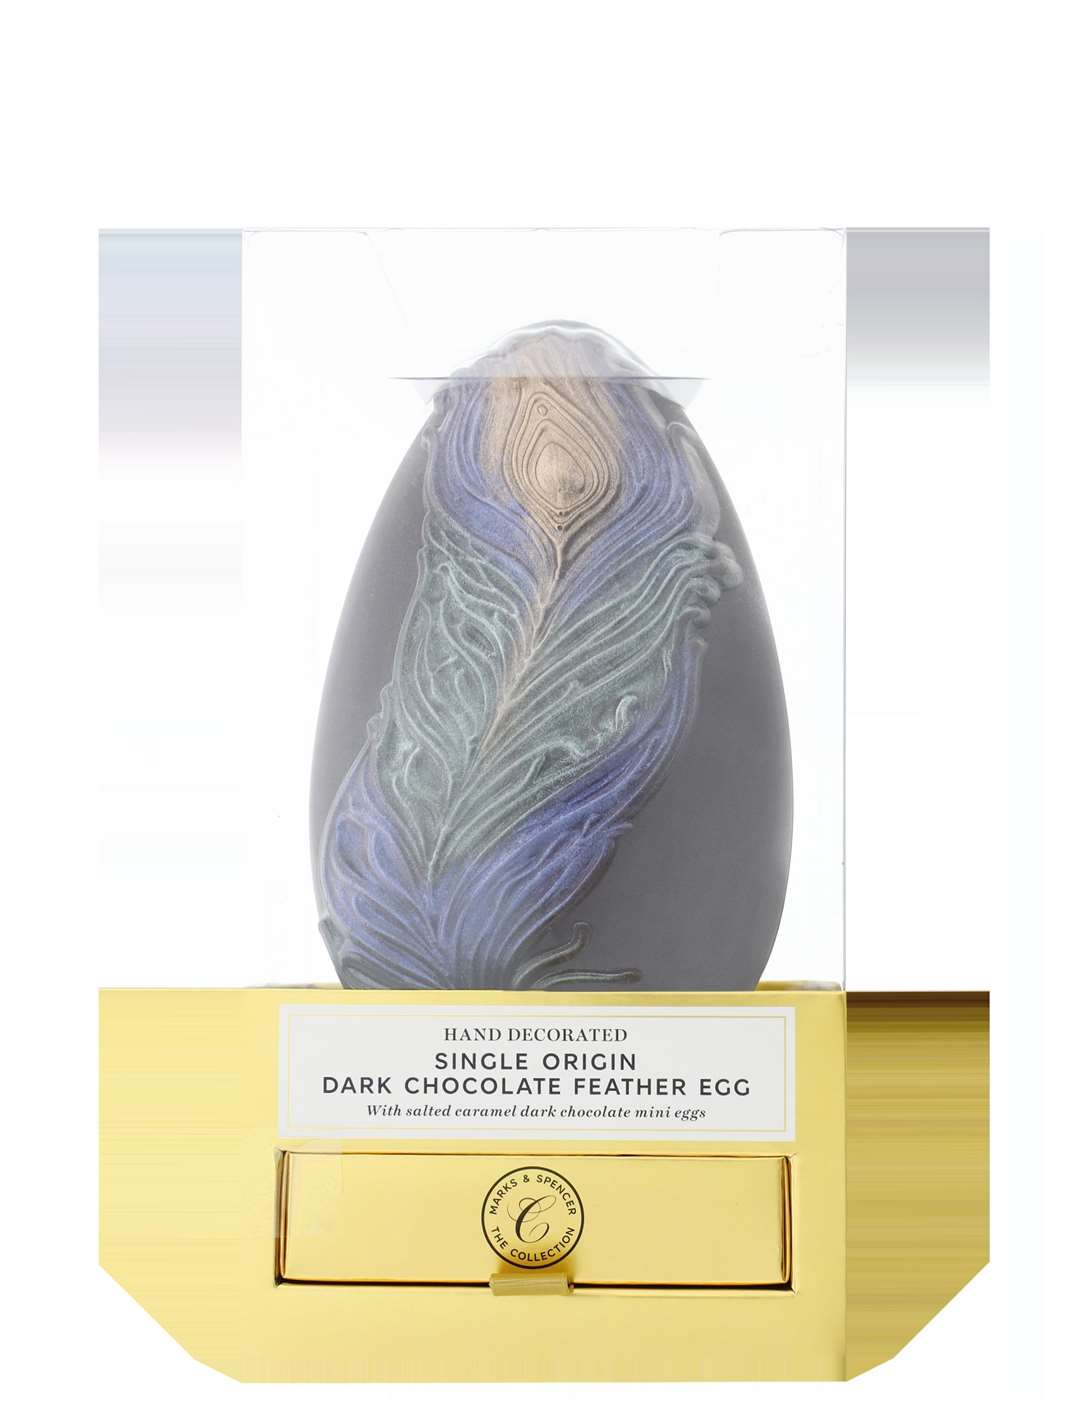 M&S Hand Decorated Single Origin Dark Chocolate Feather Egg